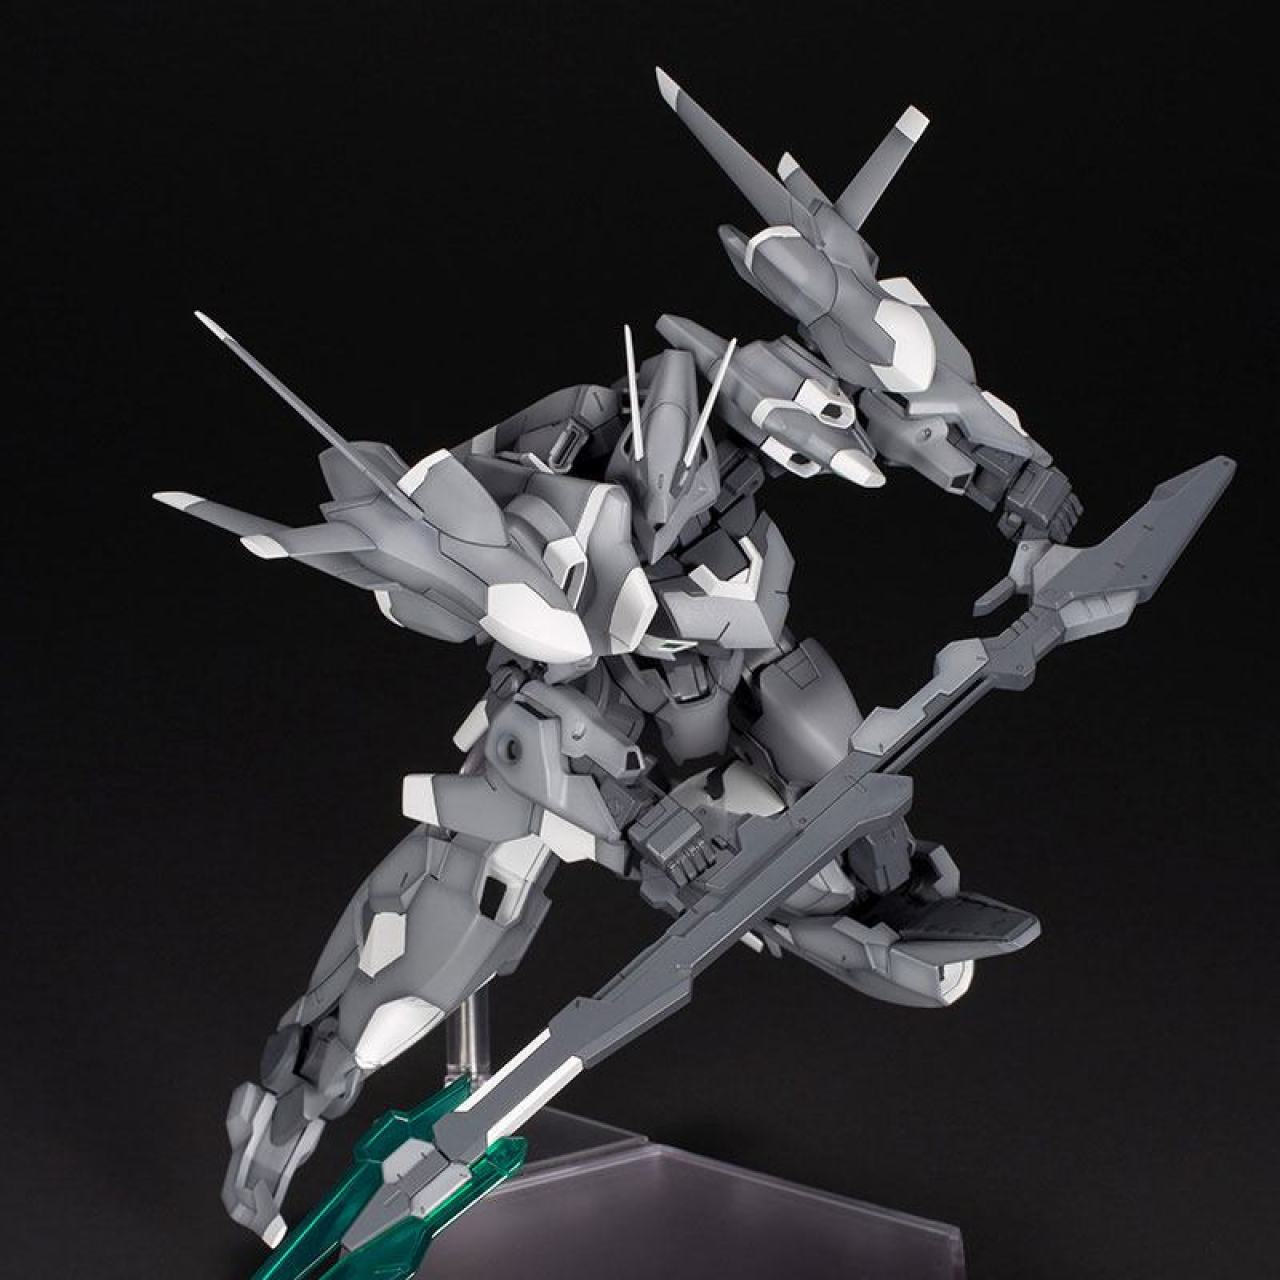 Frame Arms Plastic Model Kit 1/100 JX-25F/S Ji-Dao SAF Custom 18 cm